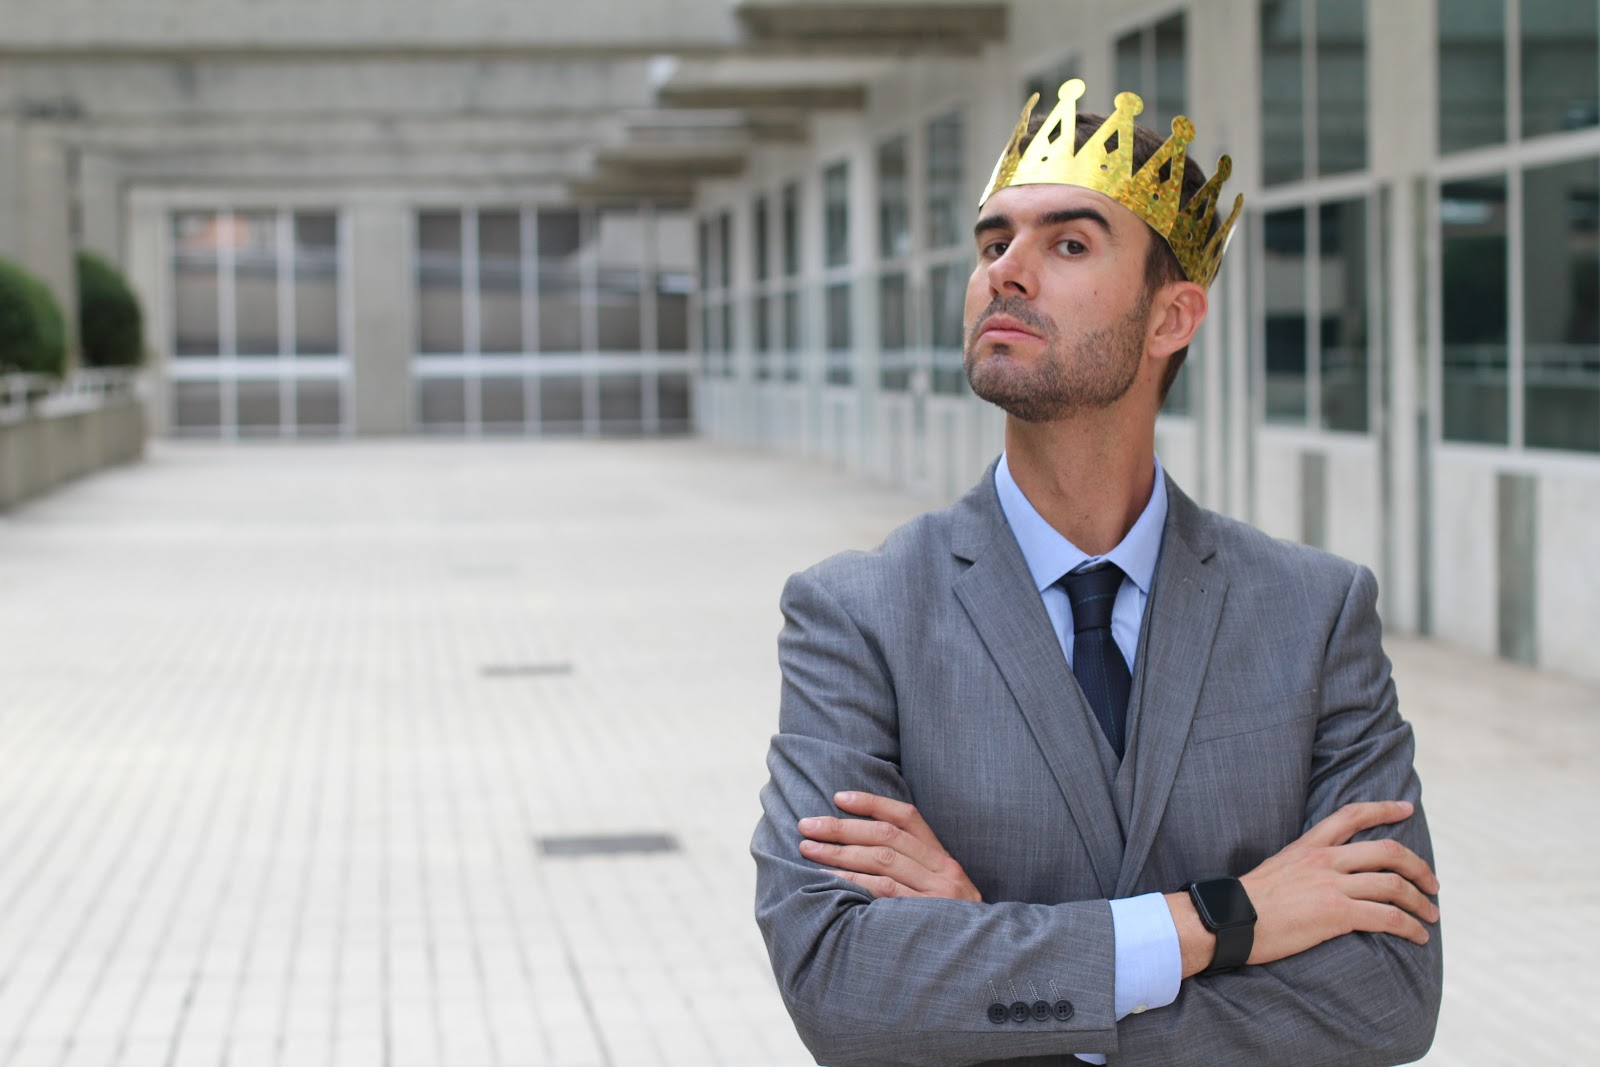 A man looking staring at the camera overly confident wearing a crown